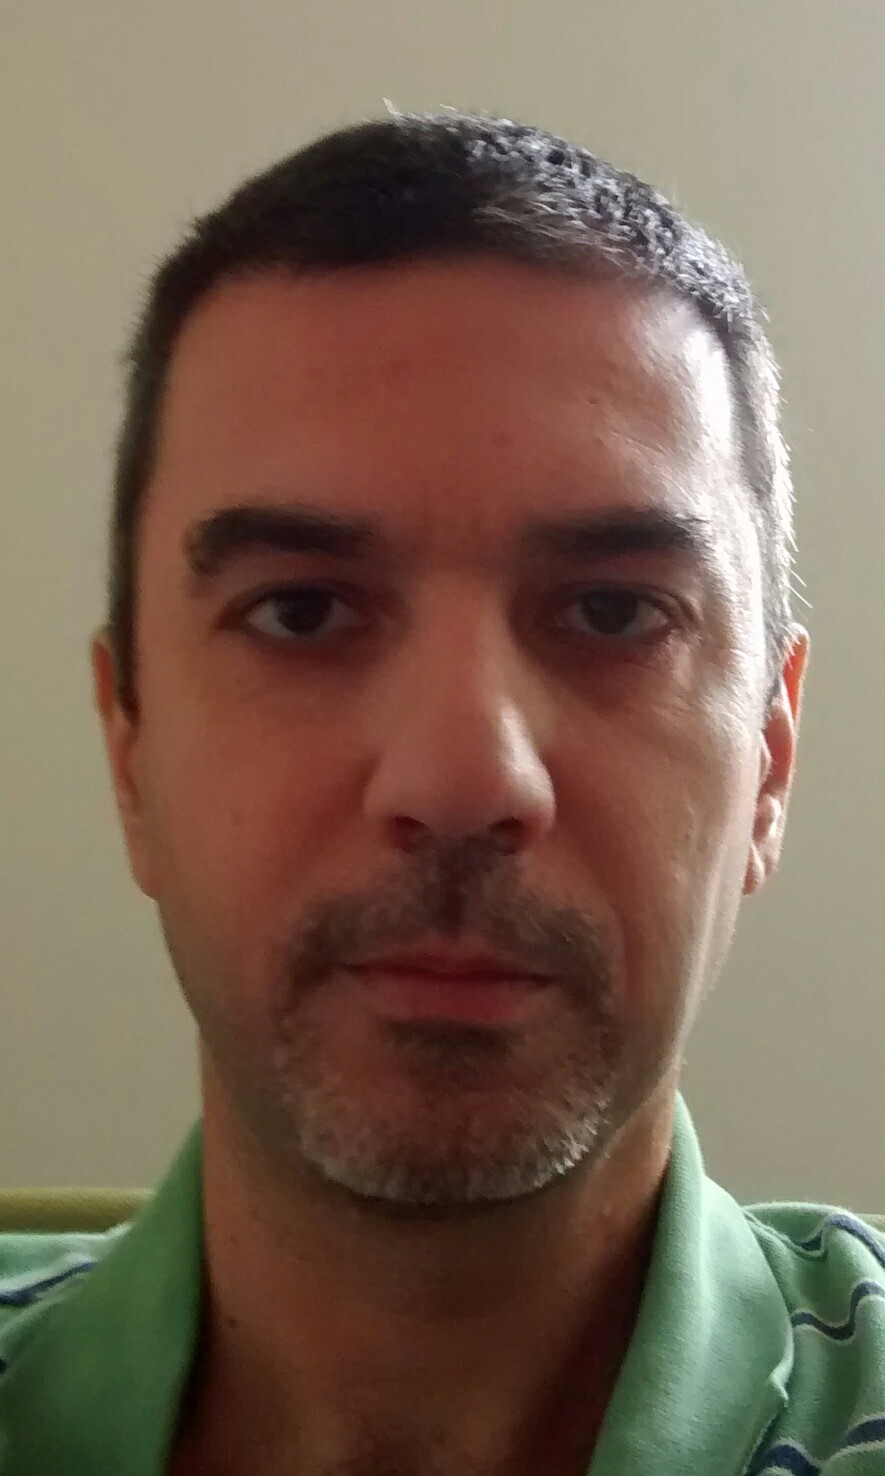 Headshot of Stamatis Stamatiadis